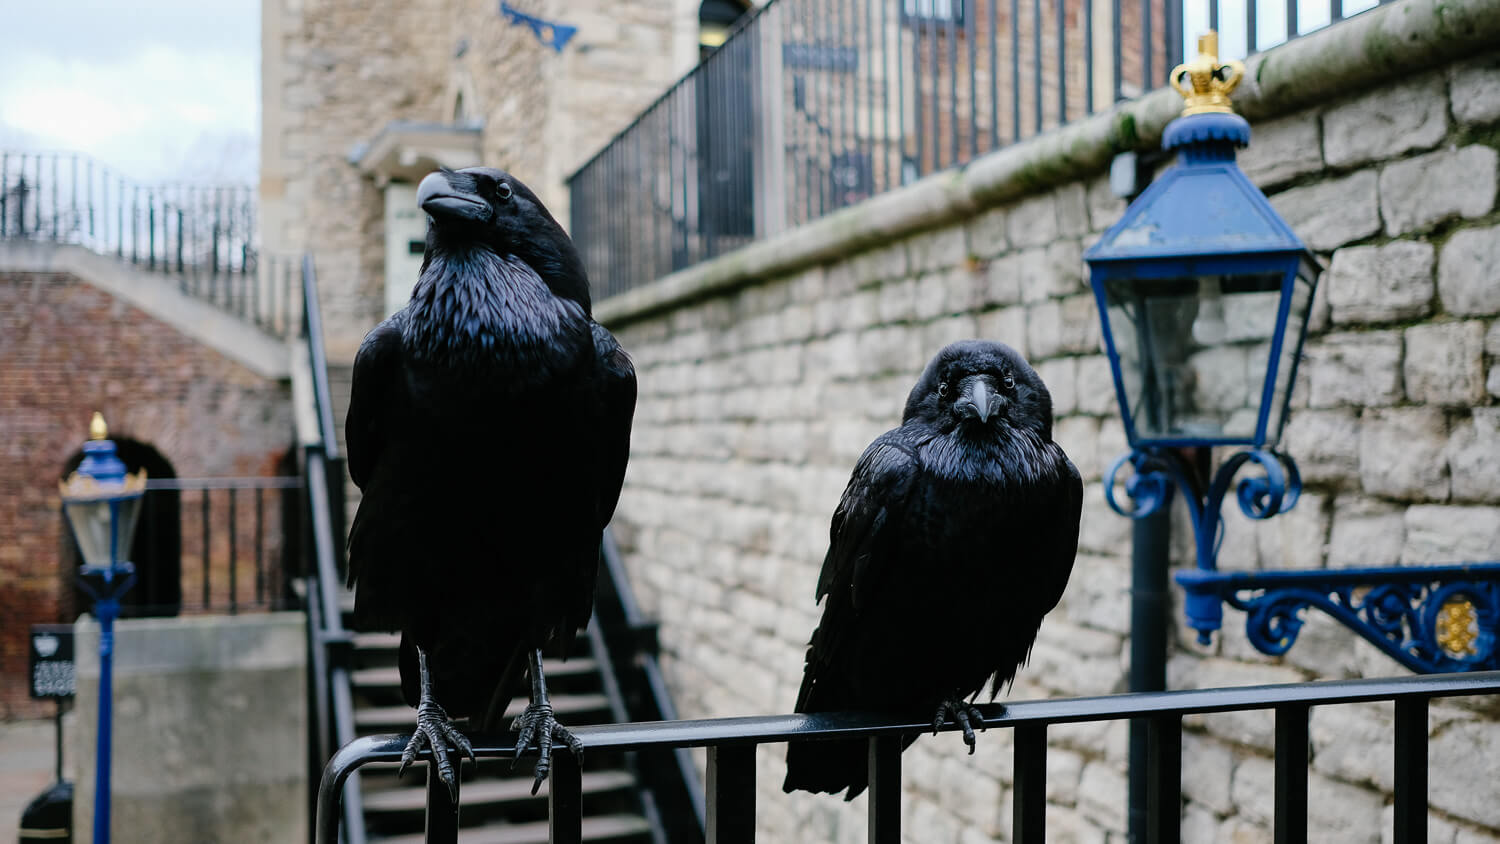 Some ravens in the Tower of London